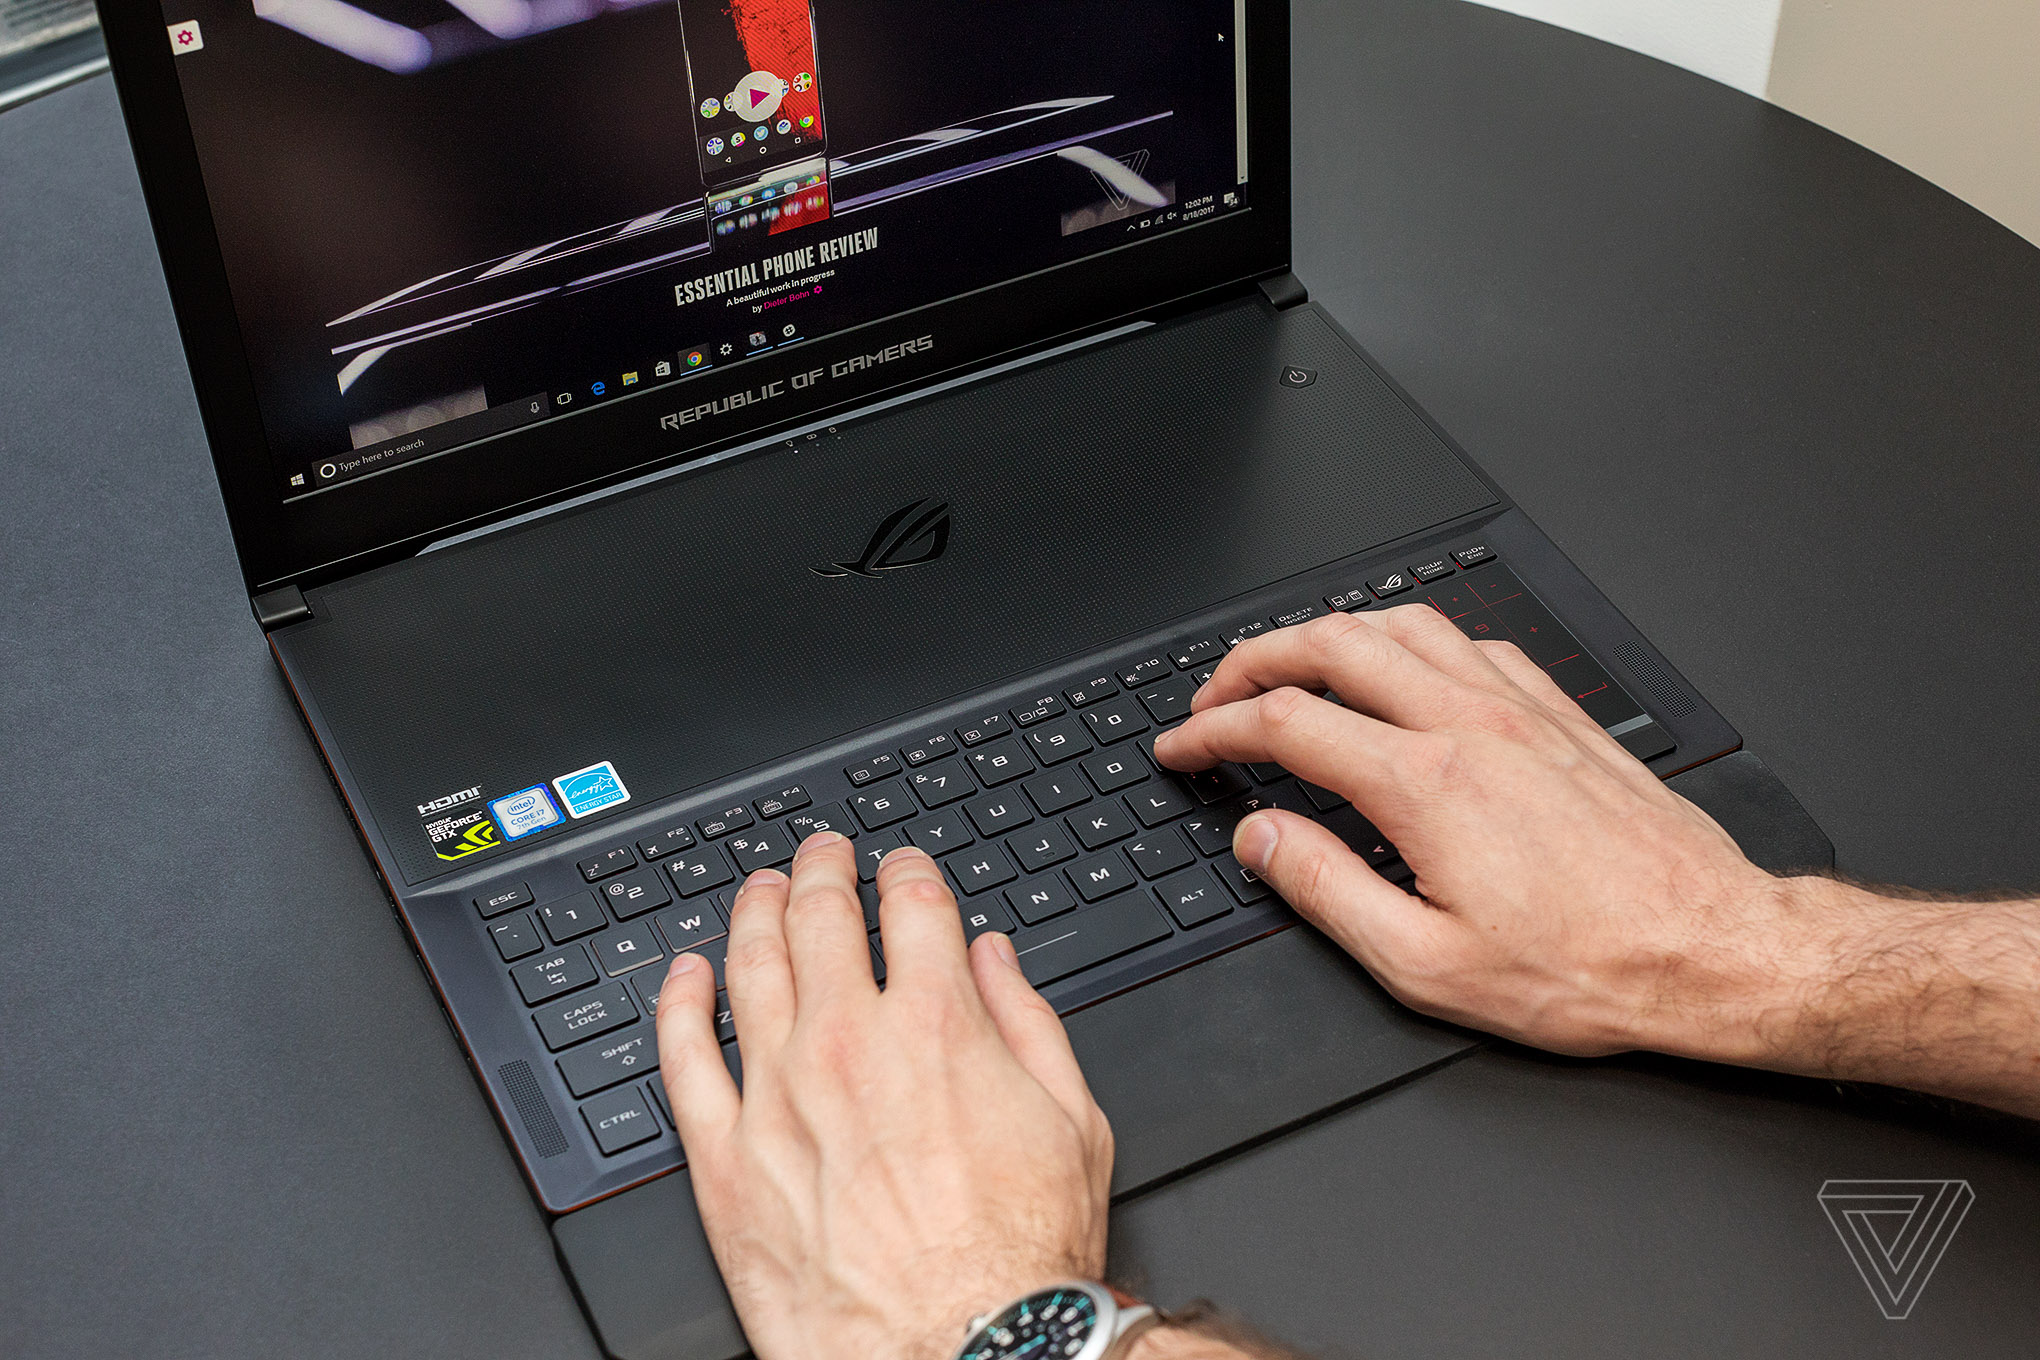 itech-dude-contents-akrales_170818_1922_0191 Asus ROG Zephyrus review: great at gaming, but not much else | iTech Dude - The Technology Blog